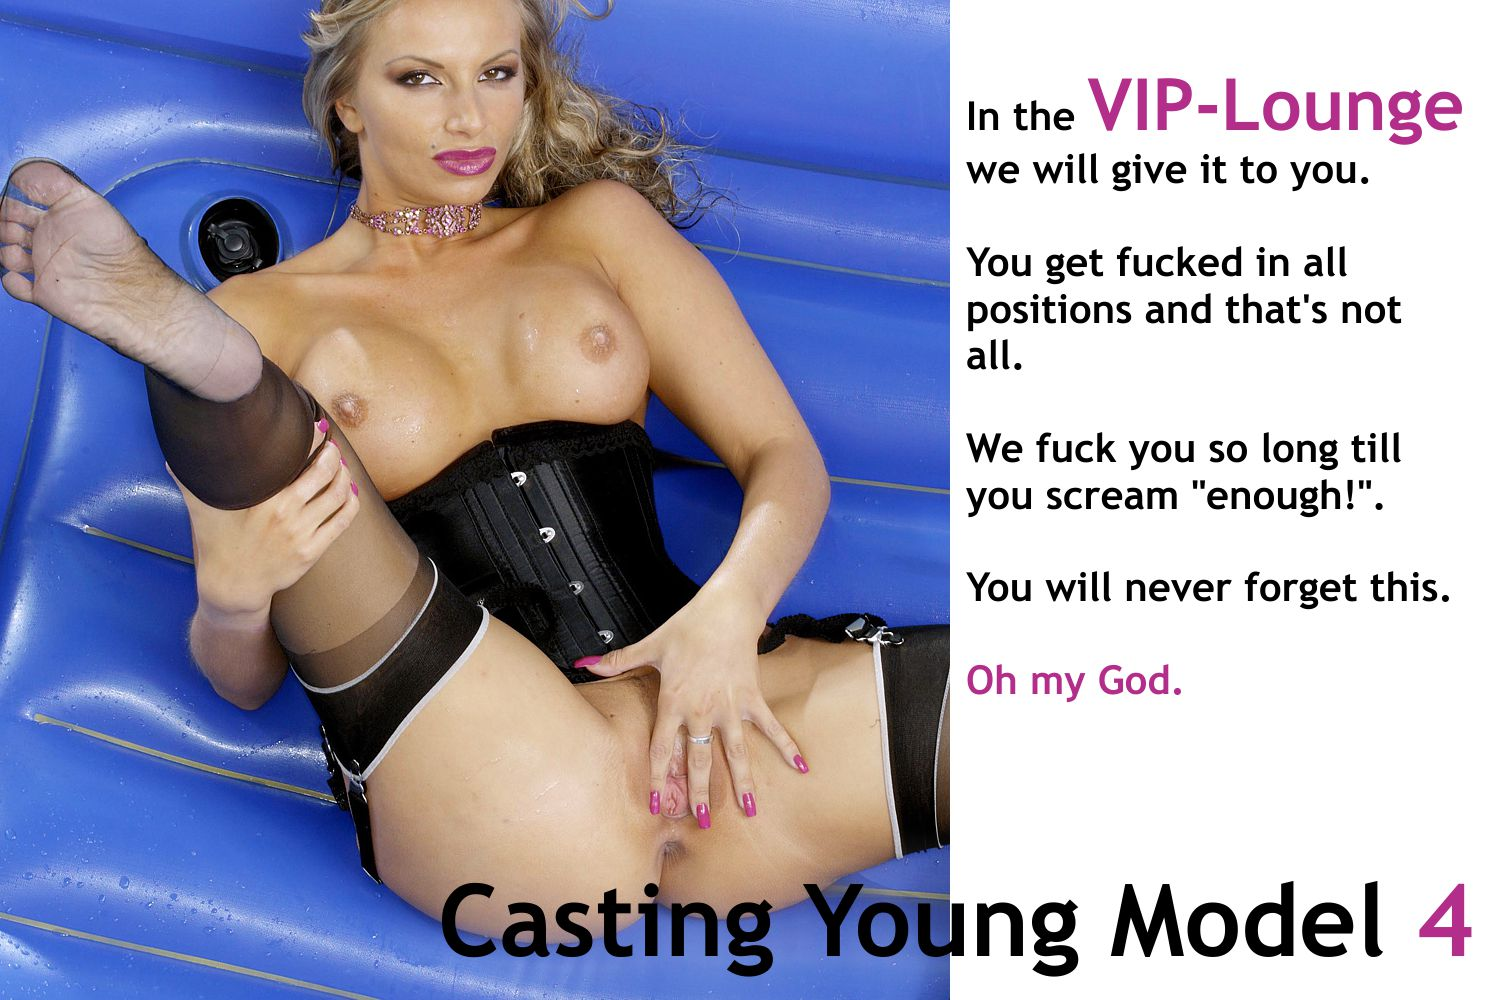 casting_young_model_4_015